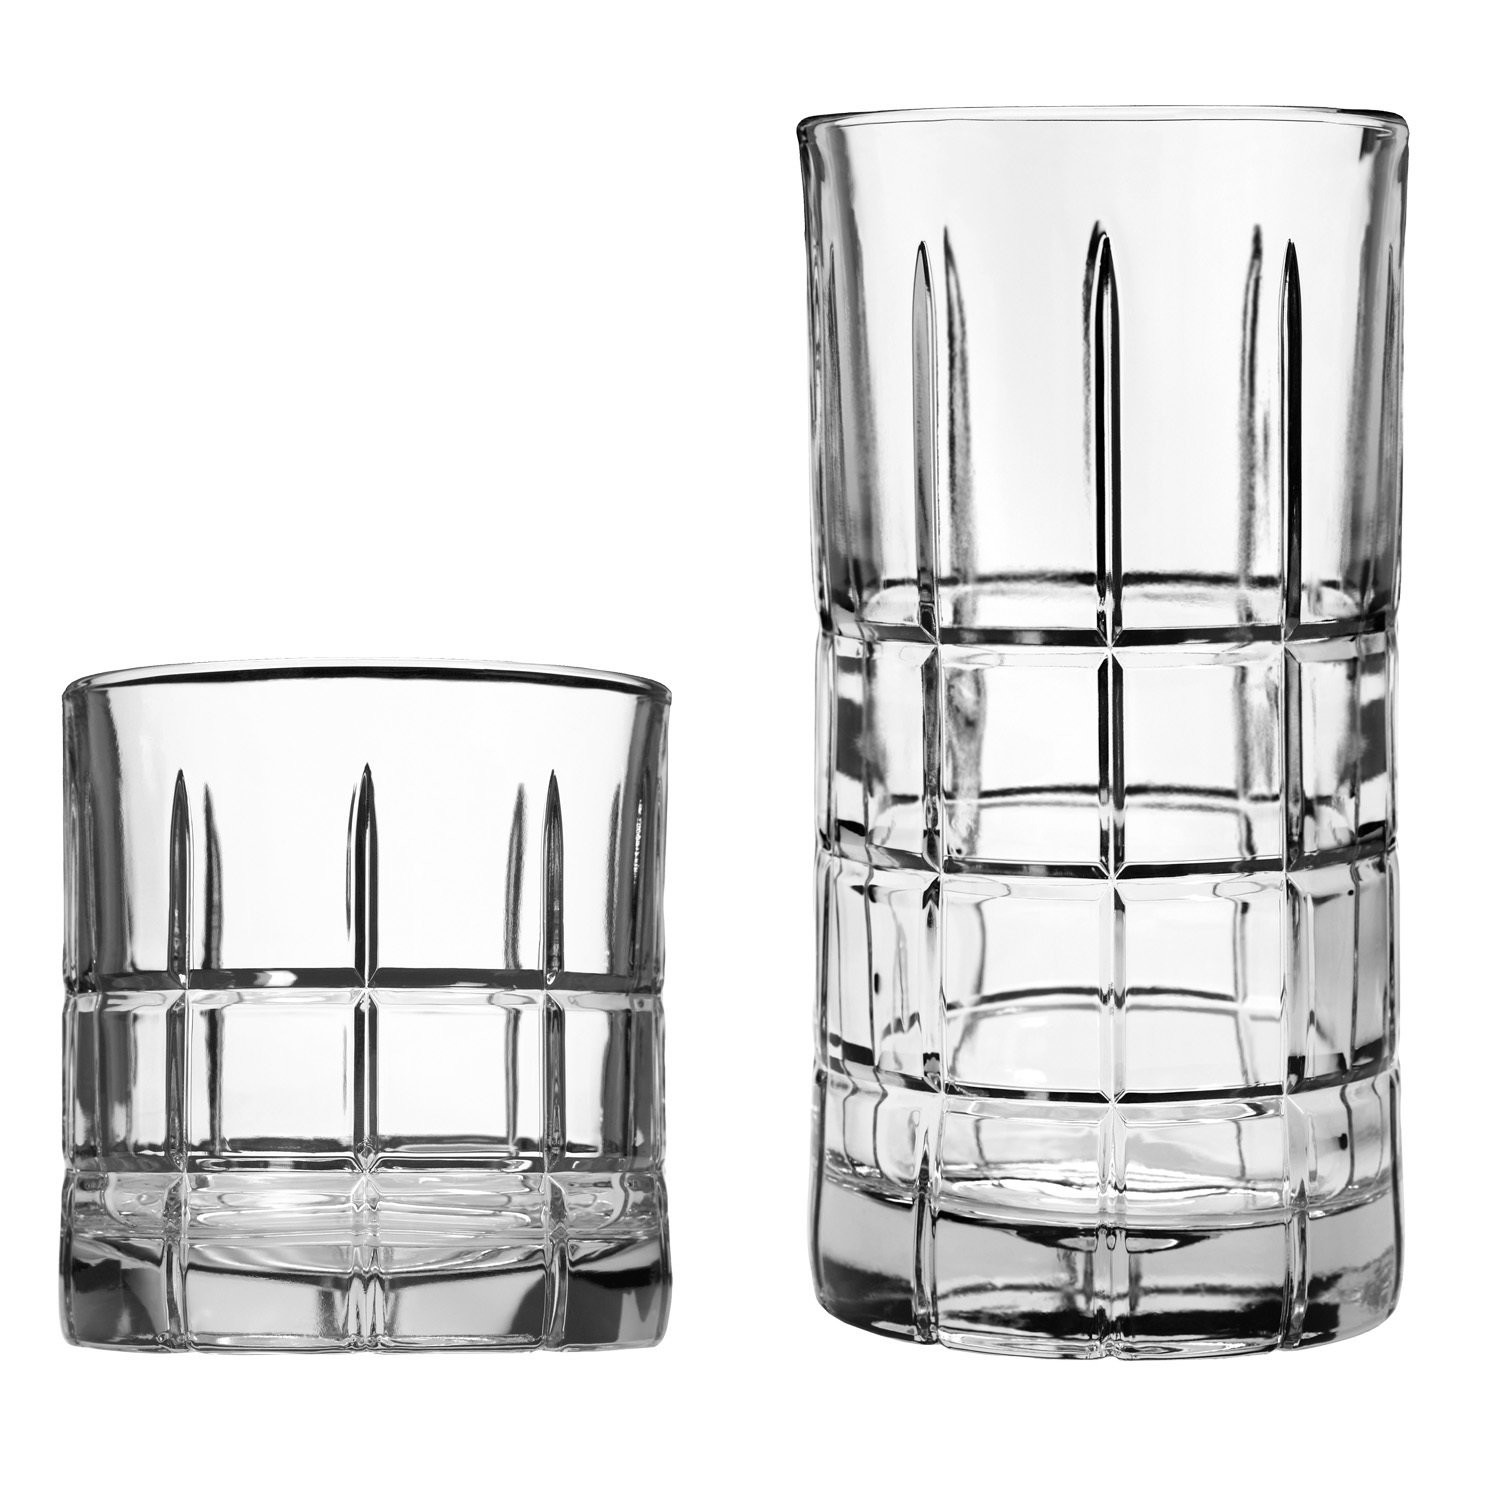 libbey floral cylinder vase of shop anchor hocking manchester 16 piece drinkware set free throughout shop anchor hocking manchester 16 piece drinkware set free shipping today overstock com 10422322